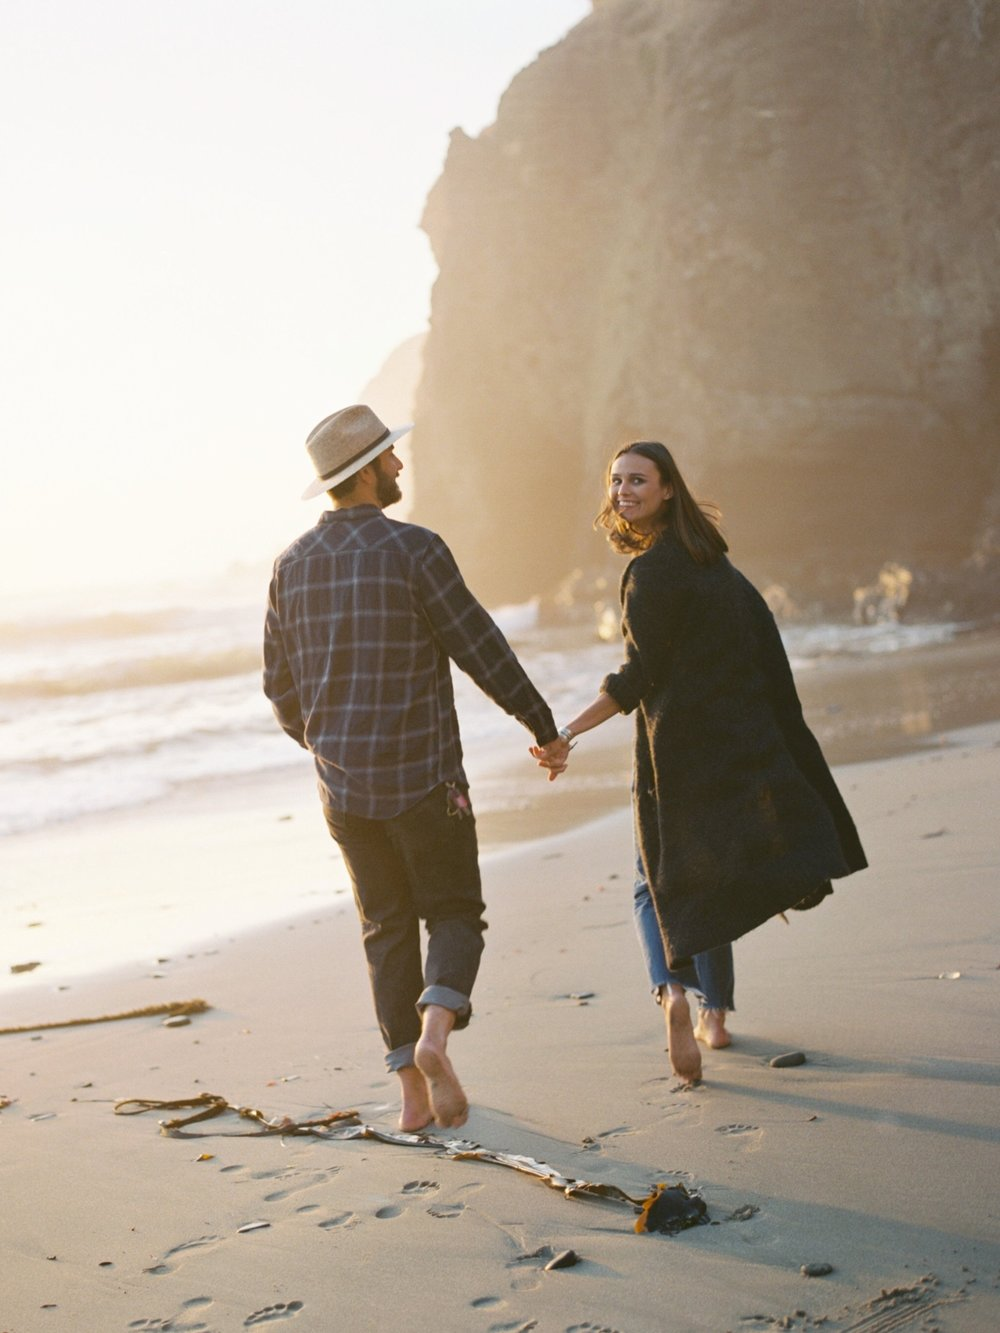 ENGAGEMENT SESSION IN NORTHERN CALIFORNIA //ALLISON AND SHANE